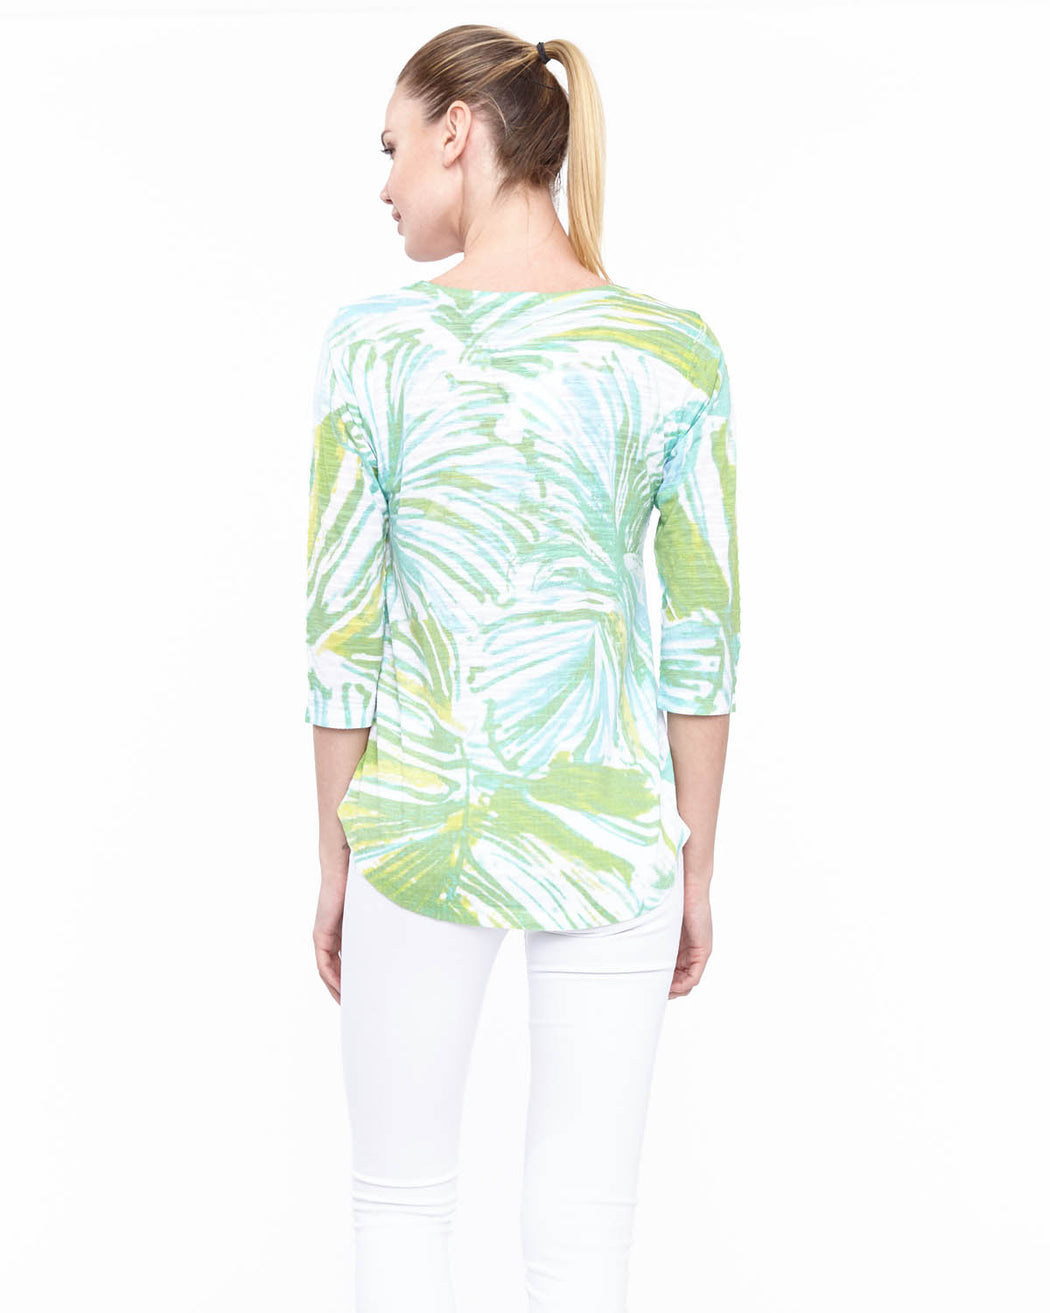 Tunic 2 Tropical Dream - Atelier5